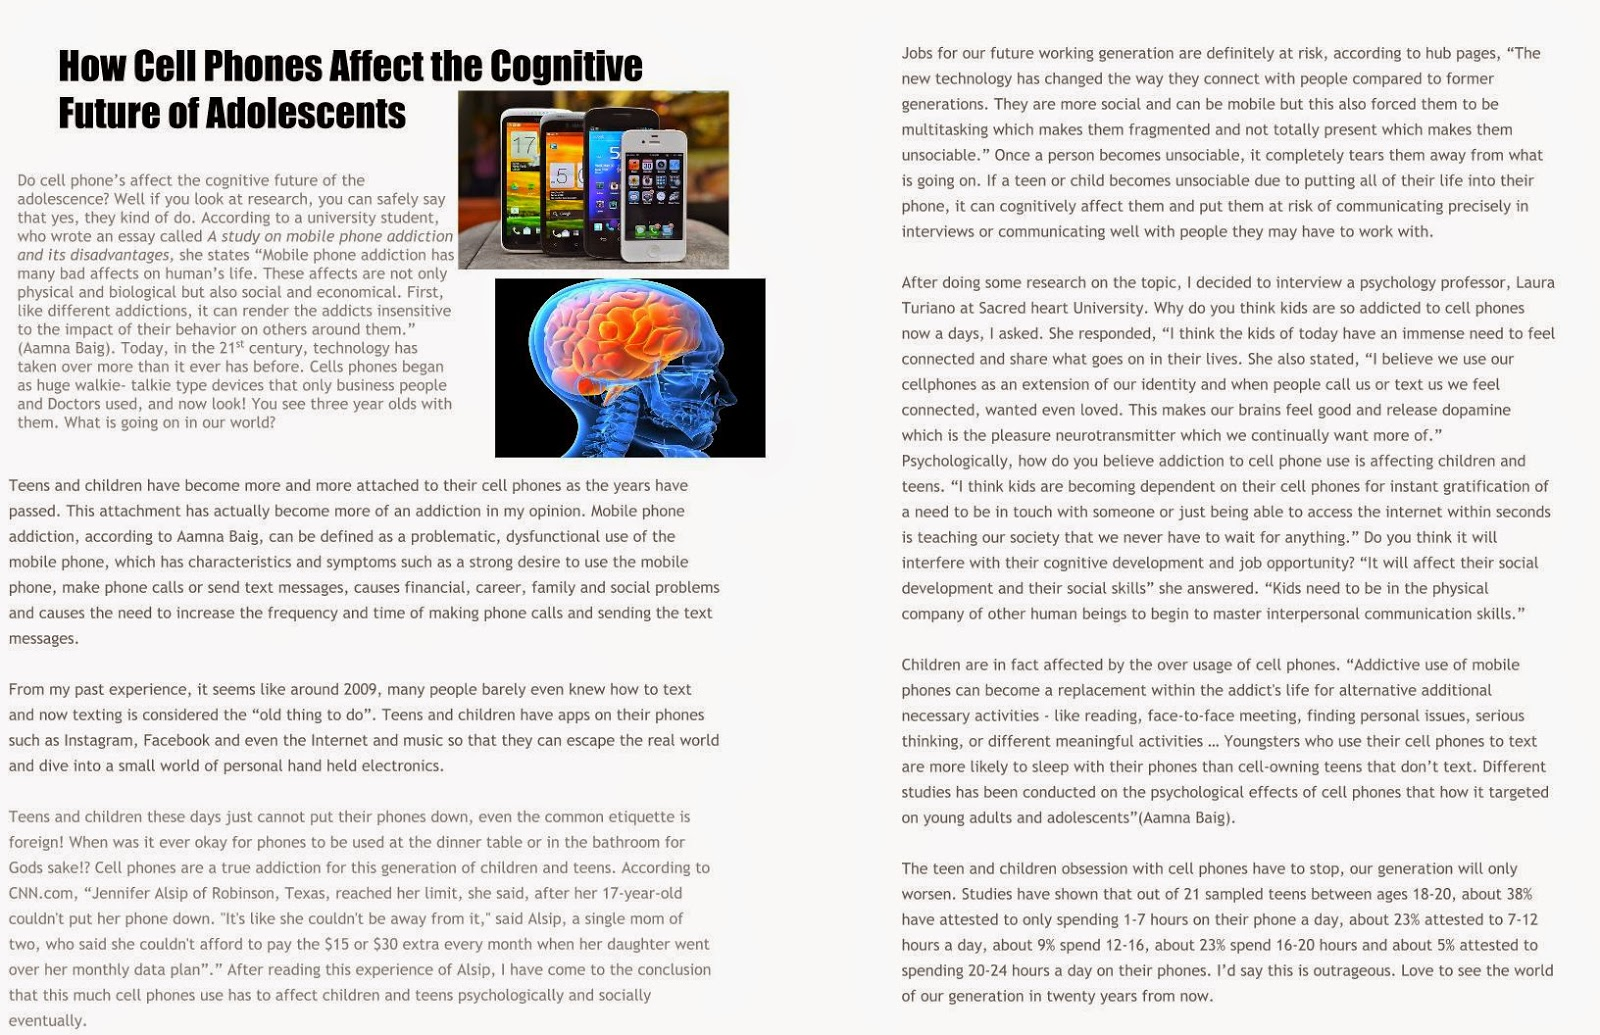 effects of cellphone use of freshmen Arguments both for and against allowing cell phones at schools tend to boil down to appropriate use and the effects having a cell phone on students' phones.